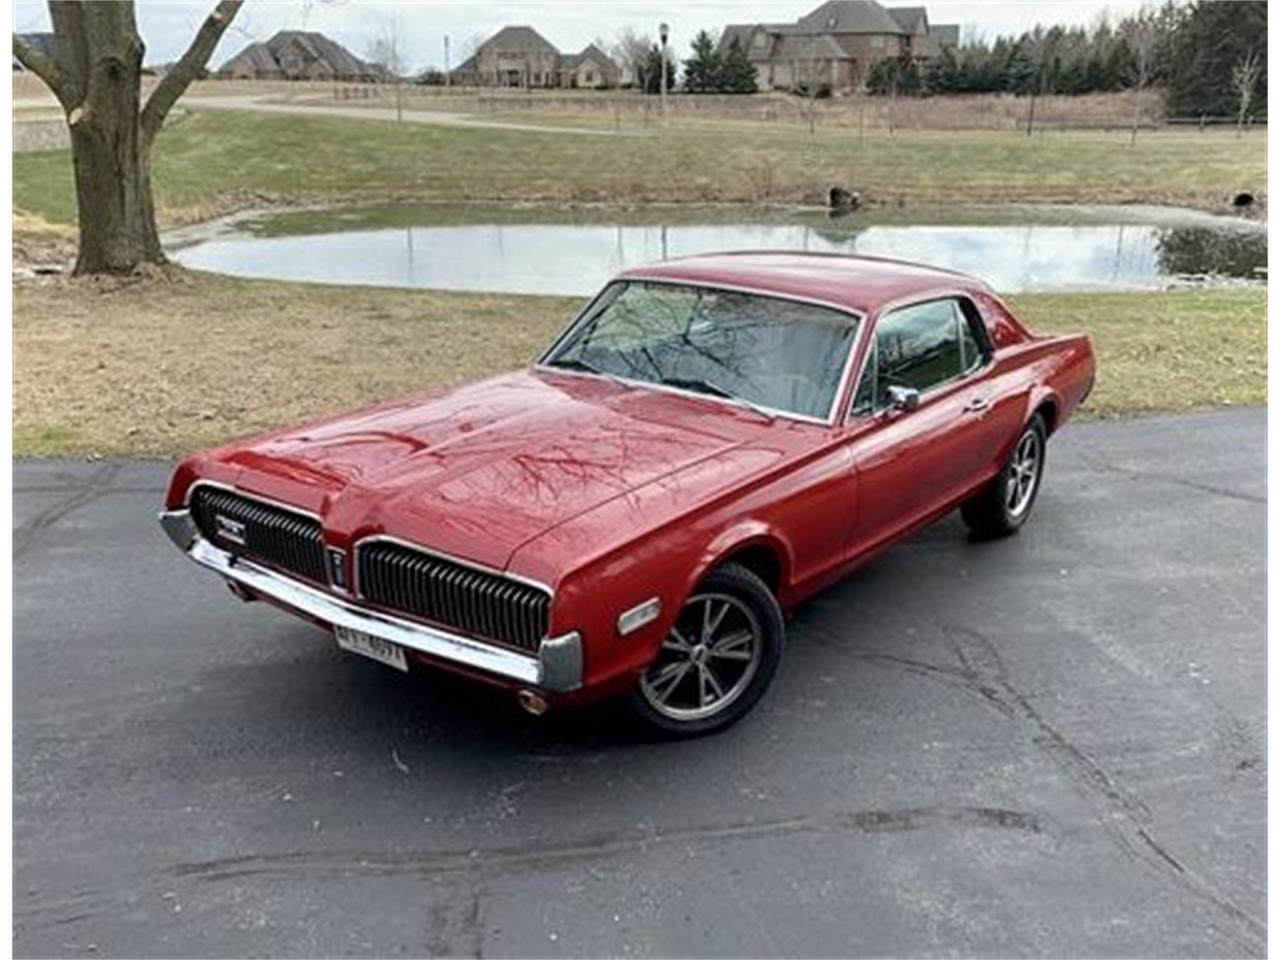 1968 Mercury Cougar XR7 (CC-1336743) for sale in Appleton, Wisconsin